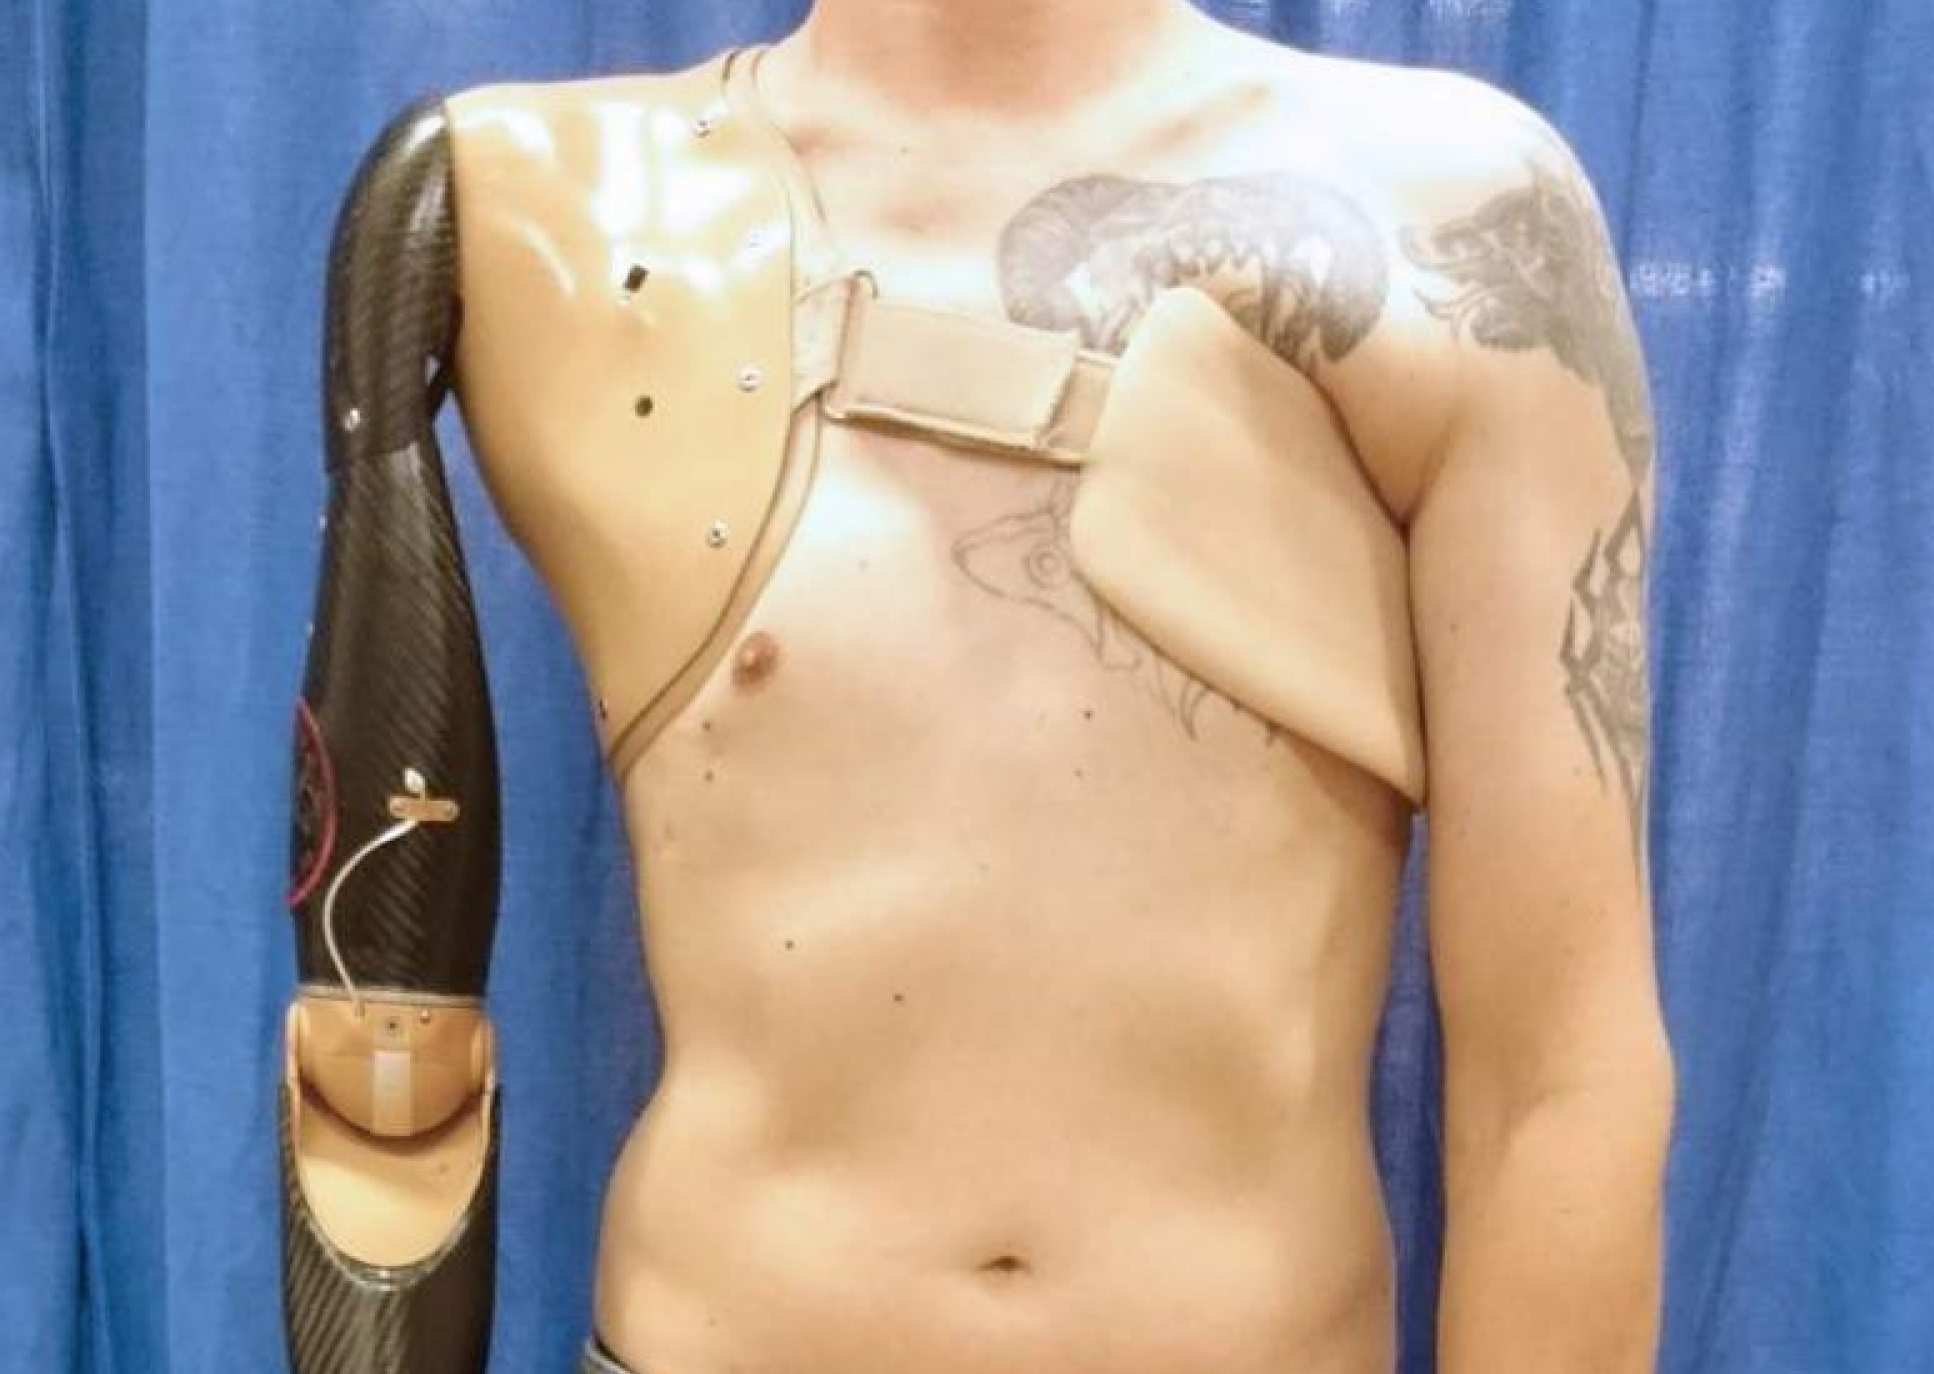 Torso of a man with a robotic arm strapped to his chest